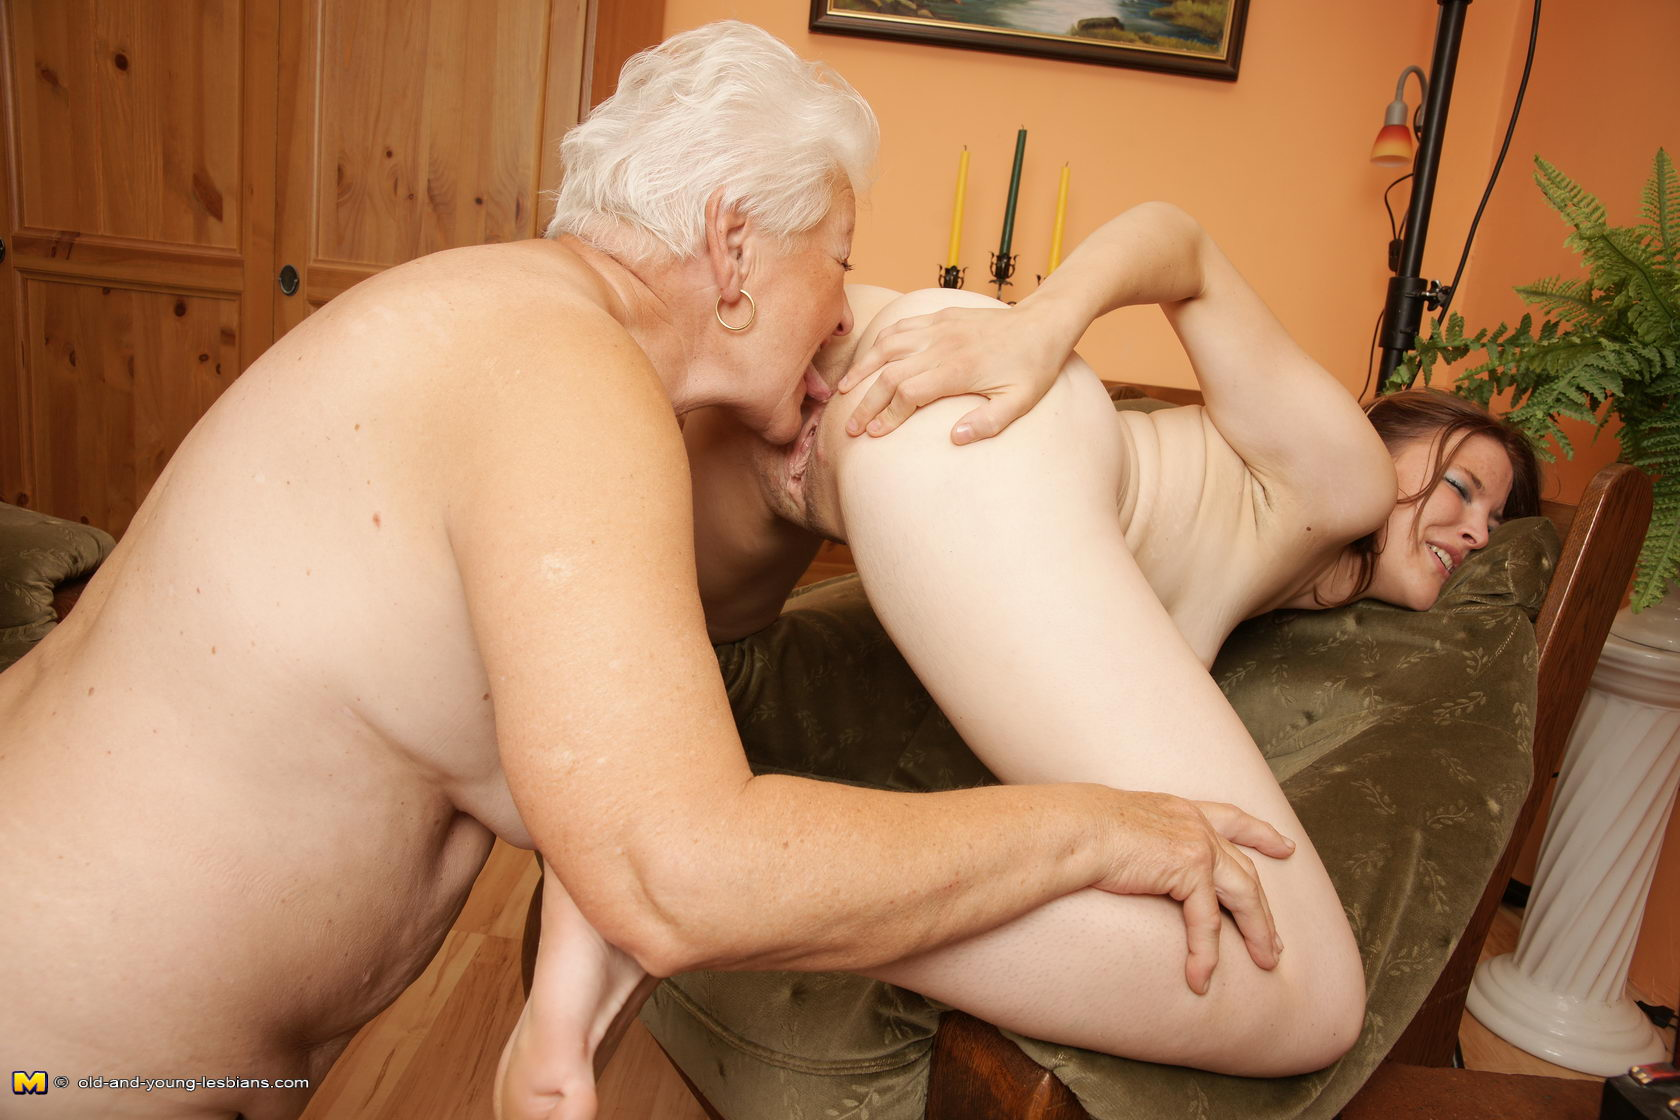 Old Young Porn Lesbian old and young lesbian lovers make it wild   free hot nude